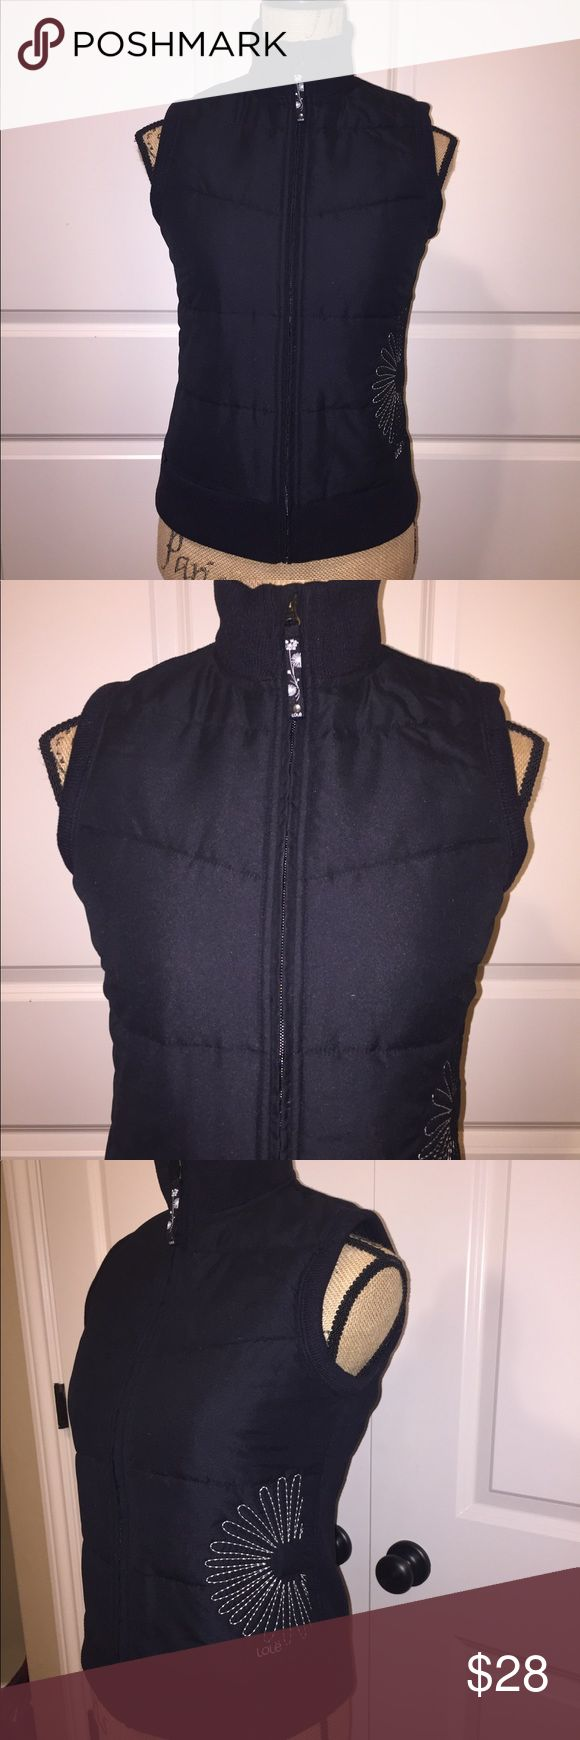 "Lole Vest Lole vest. Black vest with fleece lining in back. Puffer look on front with white floral stitching on left side. Small zippered pocket on bottom front. Quick dry, breathable vest. 23"" length.100% polyester. Size S. Lole Jackets & Coats Vests"